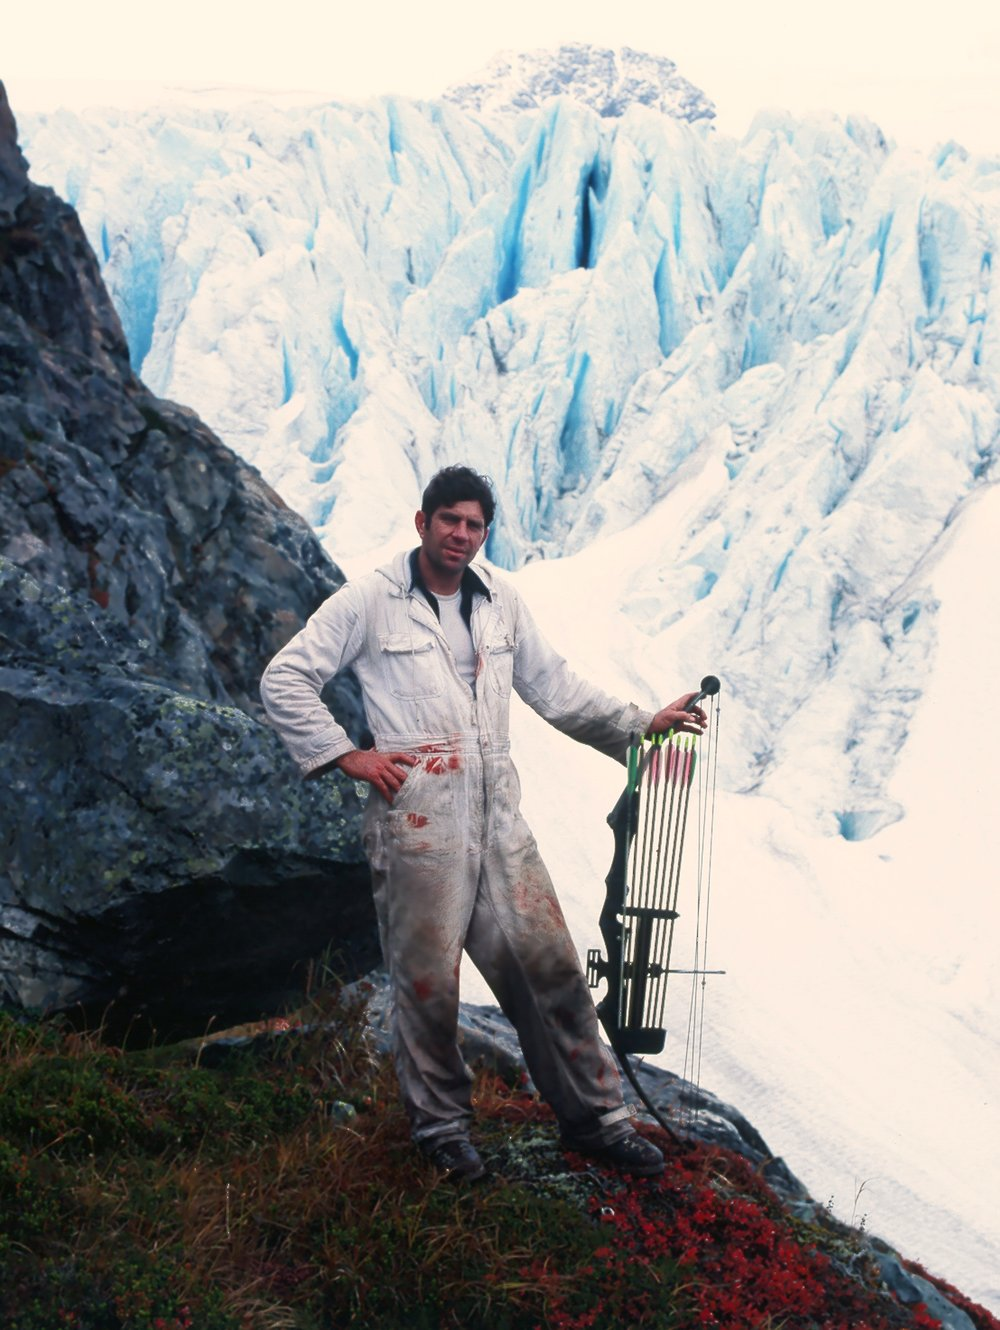 Standing with my new PSE compound bow with the rugged Trail Glacier in the background.